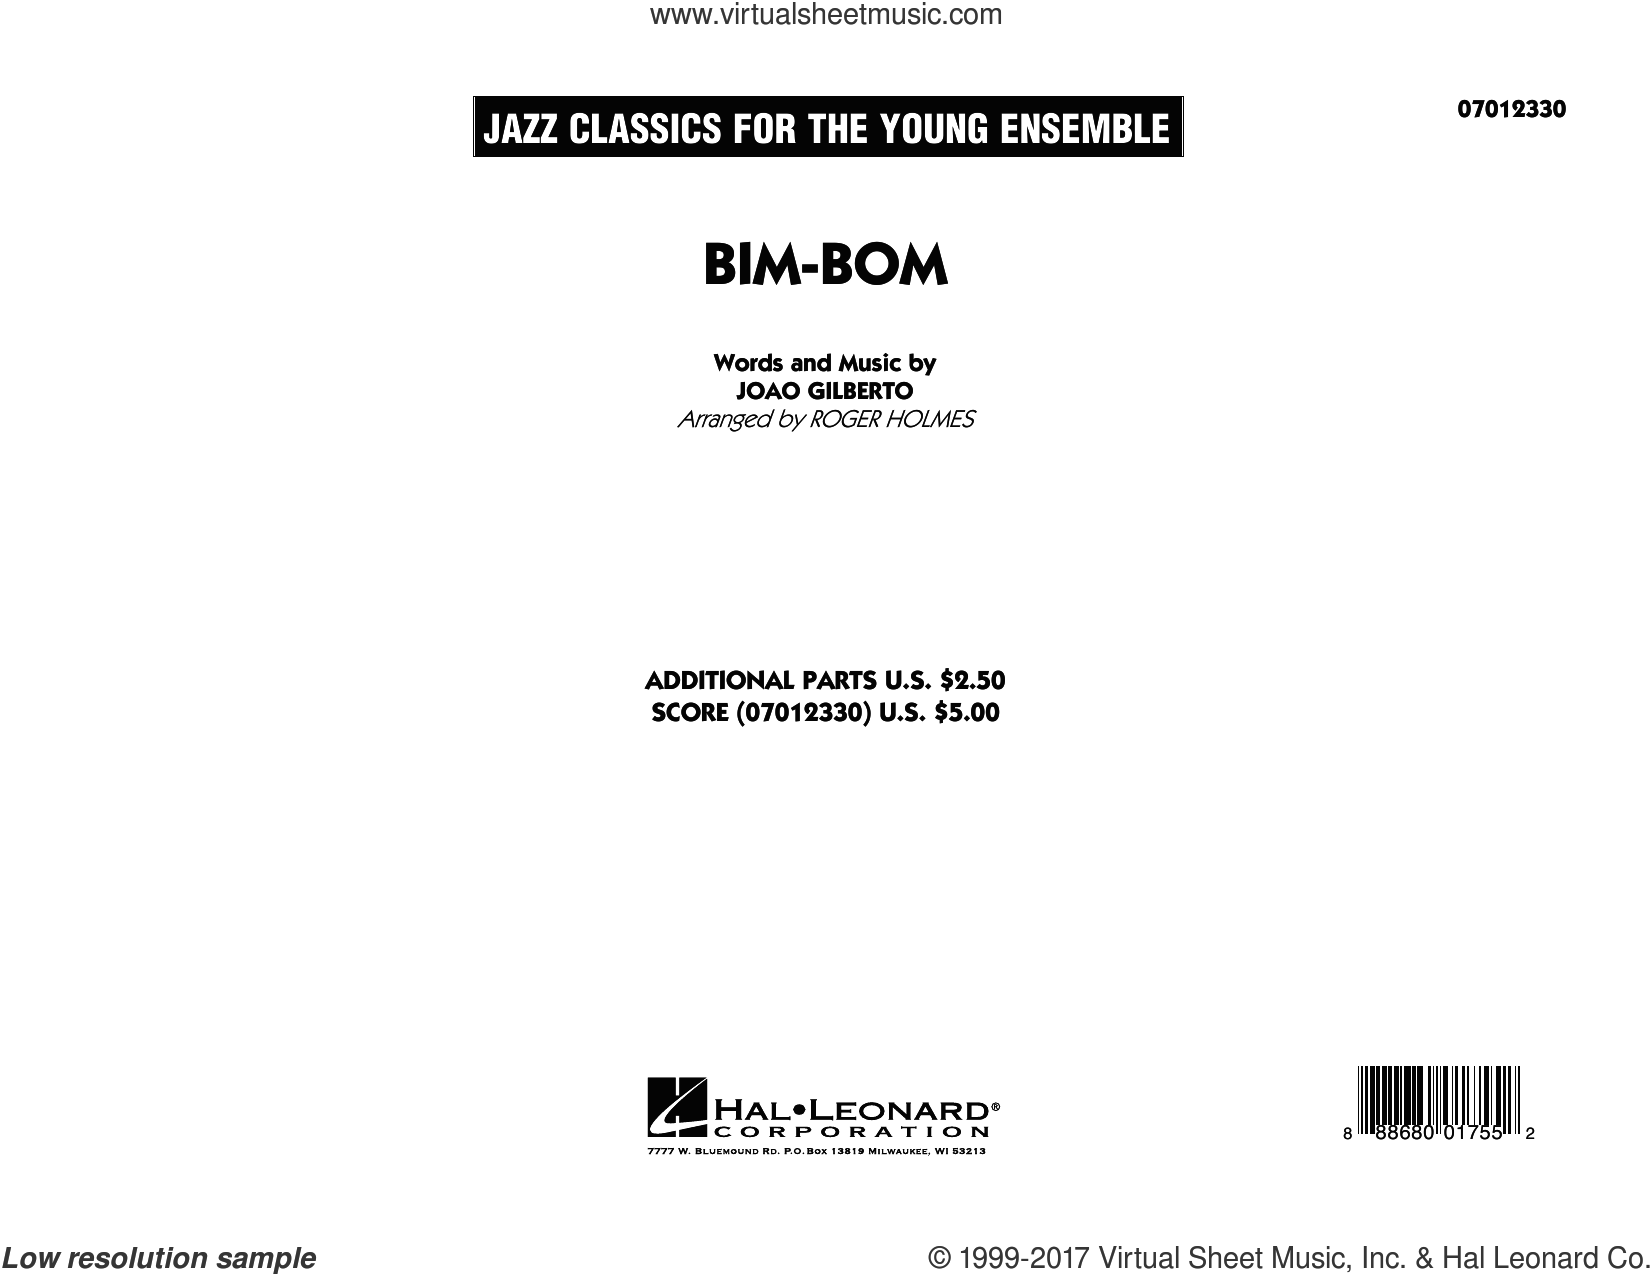 Bim-Bom (COMPLETE) sheet music for jazz band by Roger Holmes and Joao Gilberto, intermediate skill level